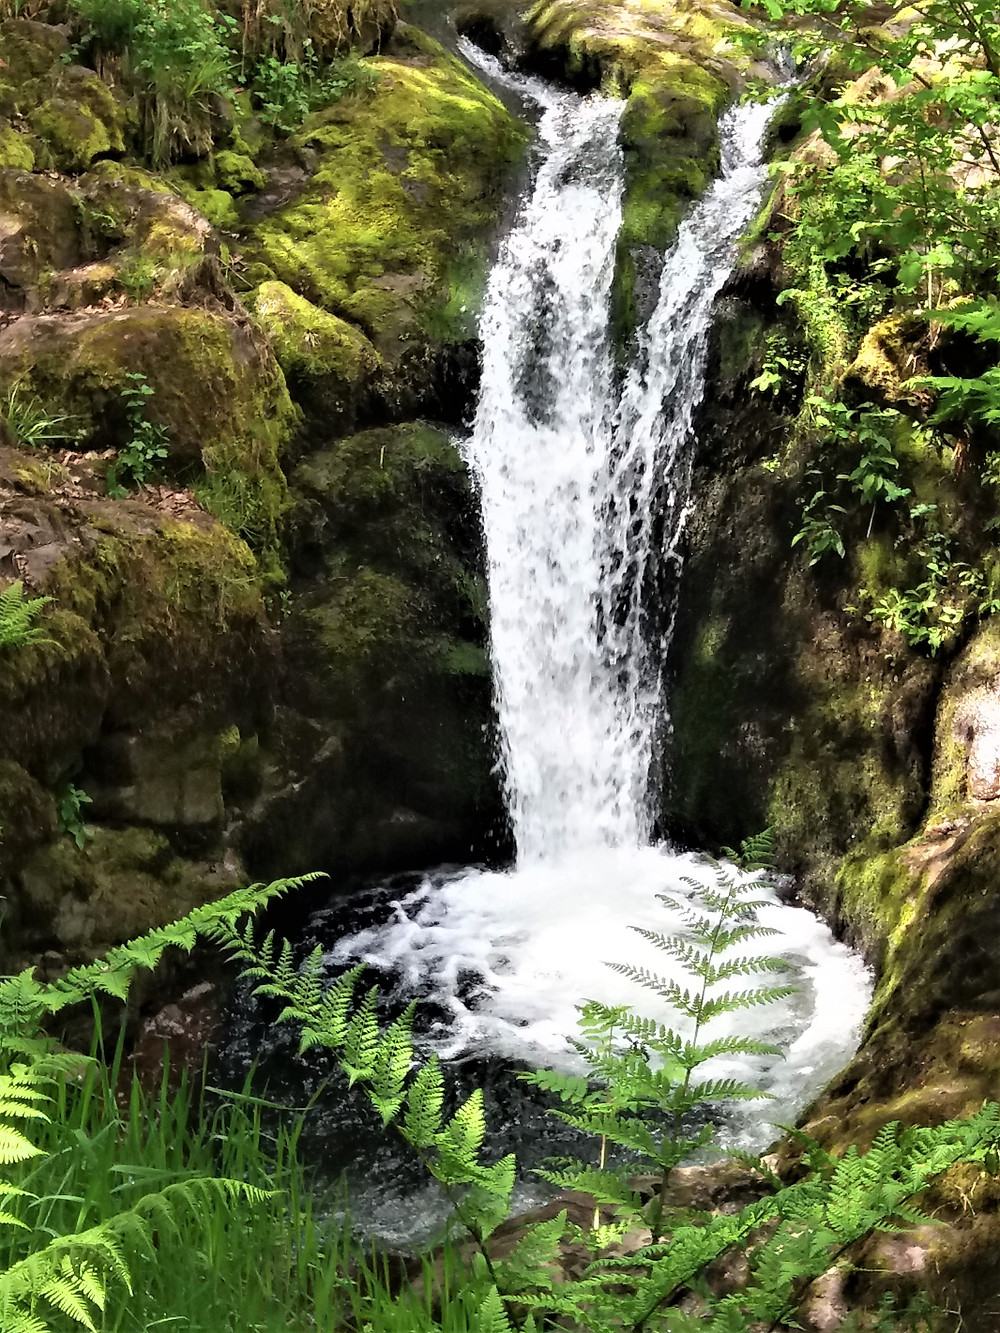 The fern gully Dollar glen, with mos covered stones and trees, with the plunging rapid waterfall.